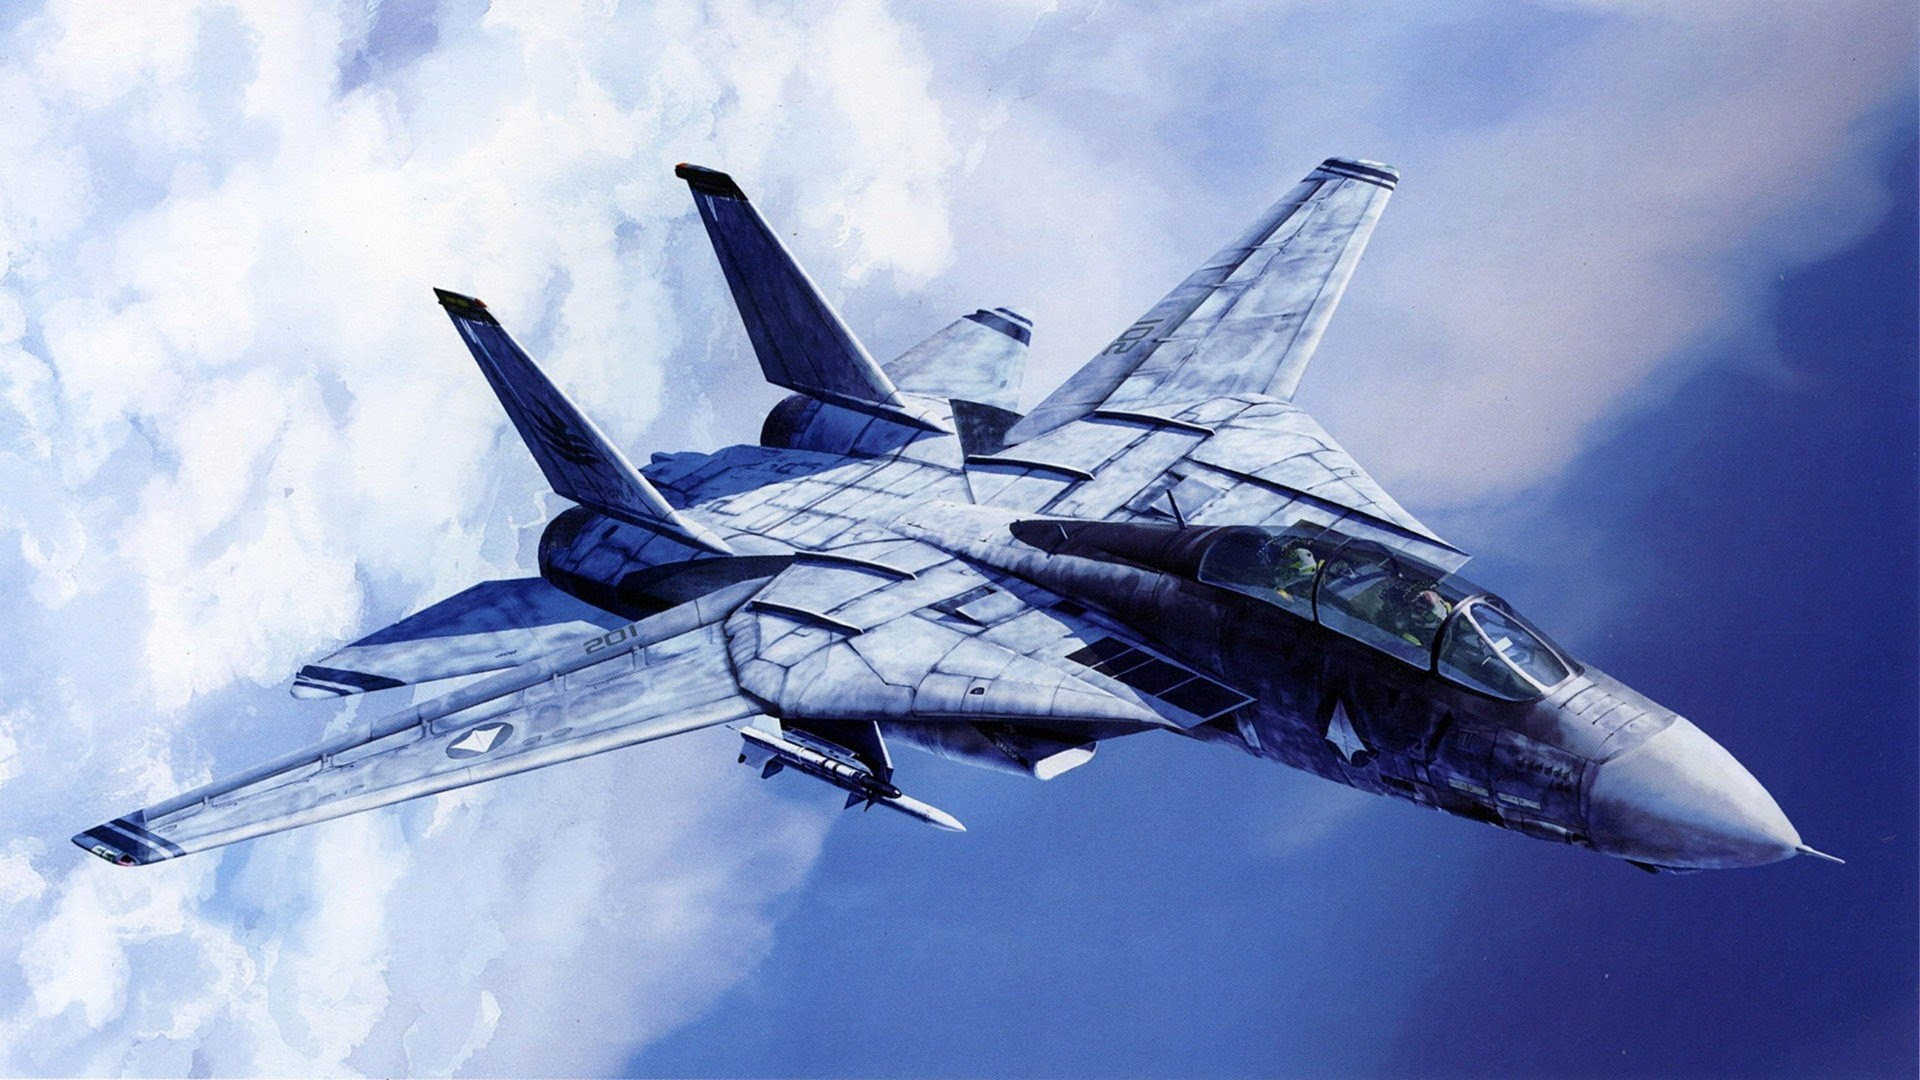 F 14 Tomcat Wallpaper Hd 82 Images